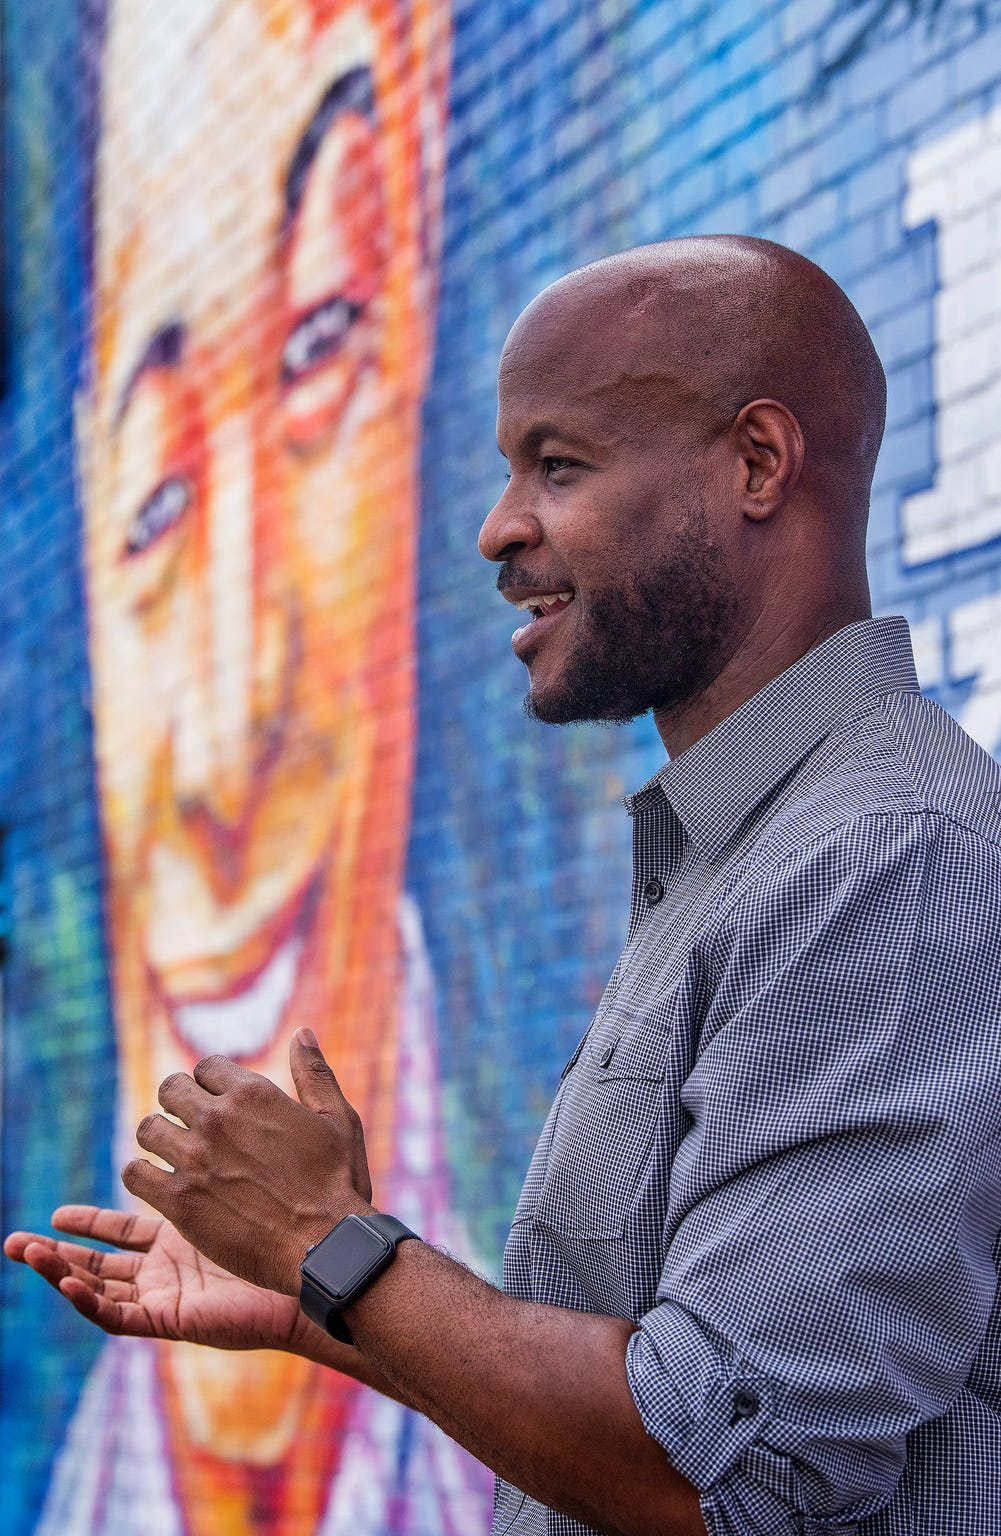 21 Dreams founder Kalonji Gilchrist talks about art projects in Montgomery as he stands in front of the Nat King Cole mural in Montgomery, Ala., on Thursday September 26, 2019.